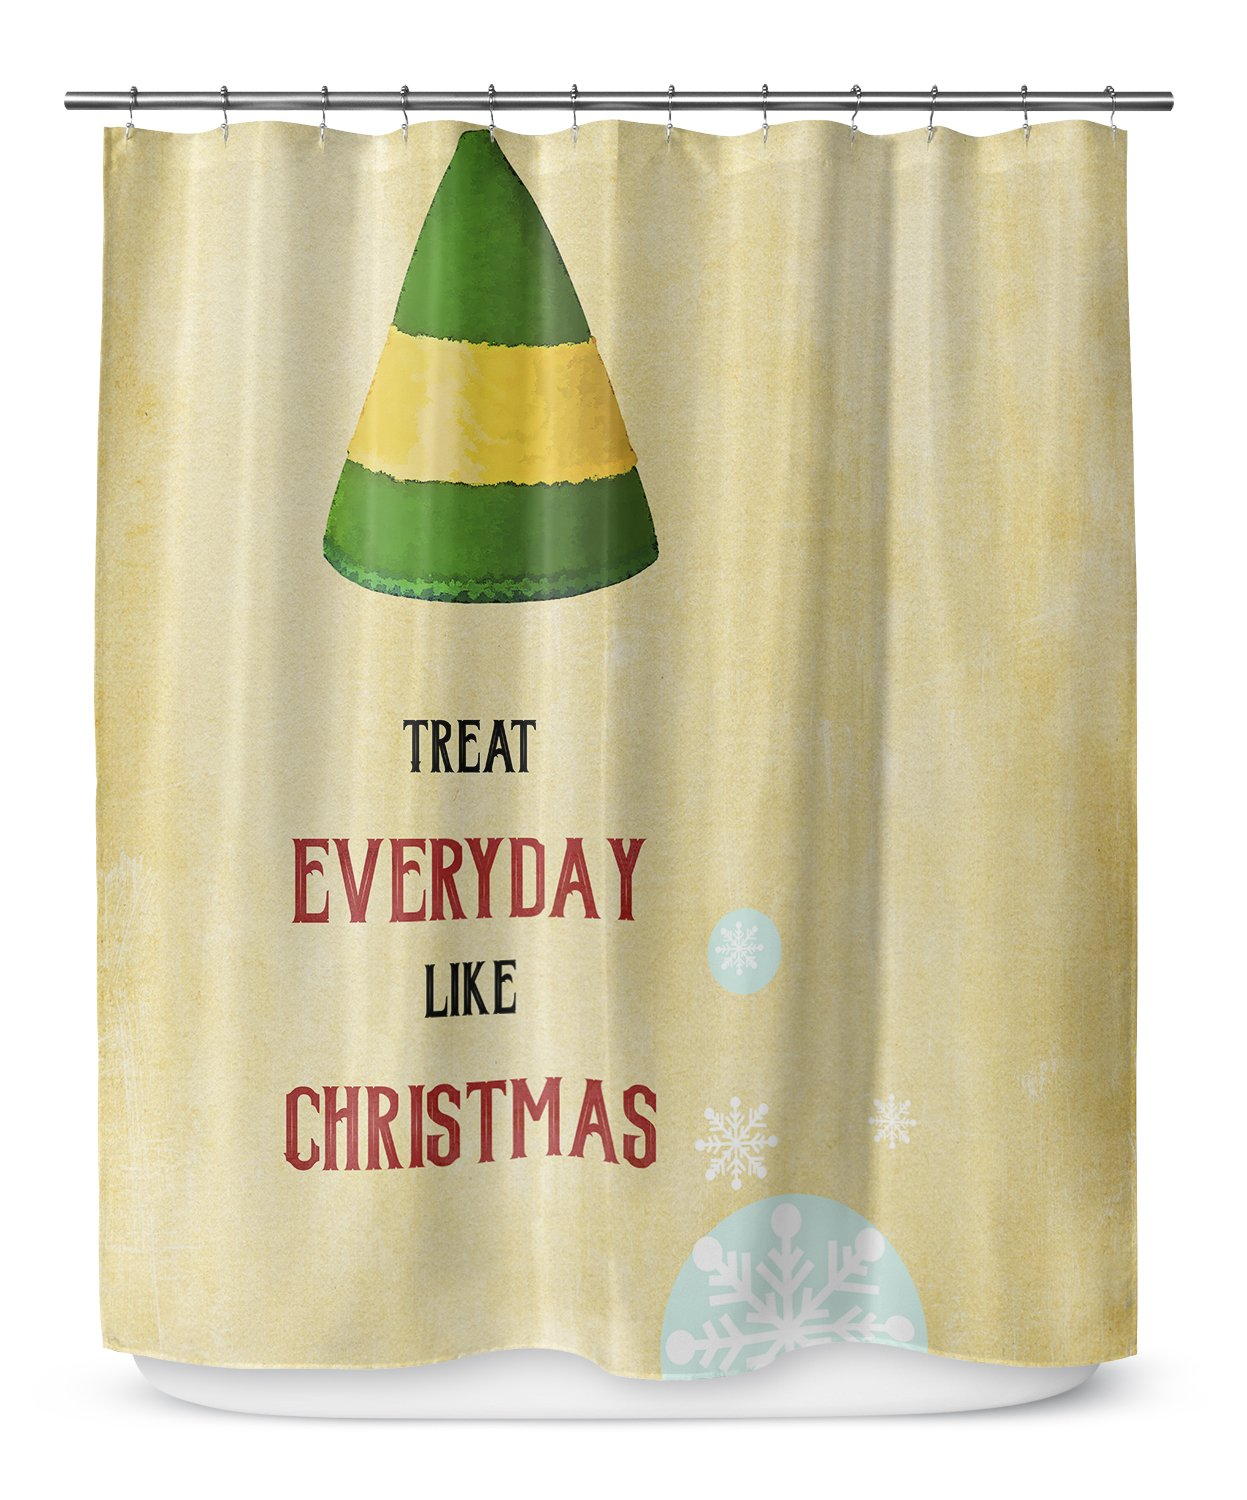 KAVKA DESIGNS Everyday Christmas Shower Curtain, (Gold/Red/Green) - TRADITIONS Collection, Size: 70x90 - (TELAVC1046LPLSC) by KAVKA DESIGNS